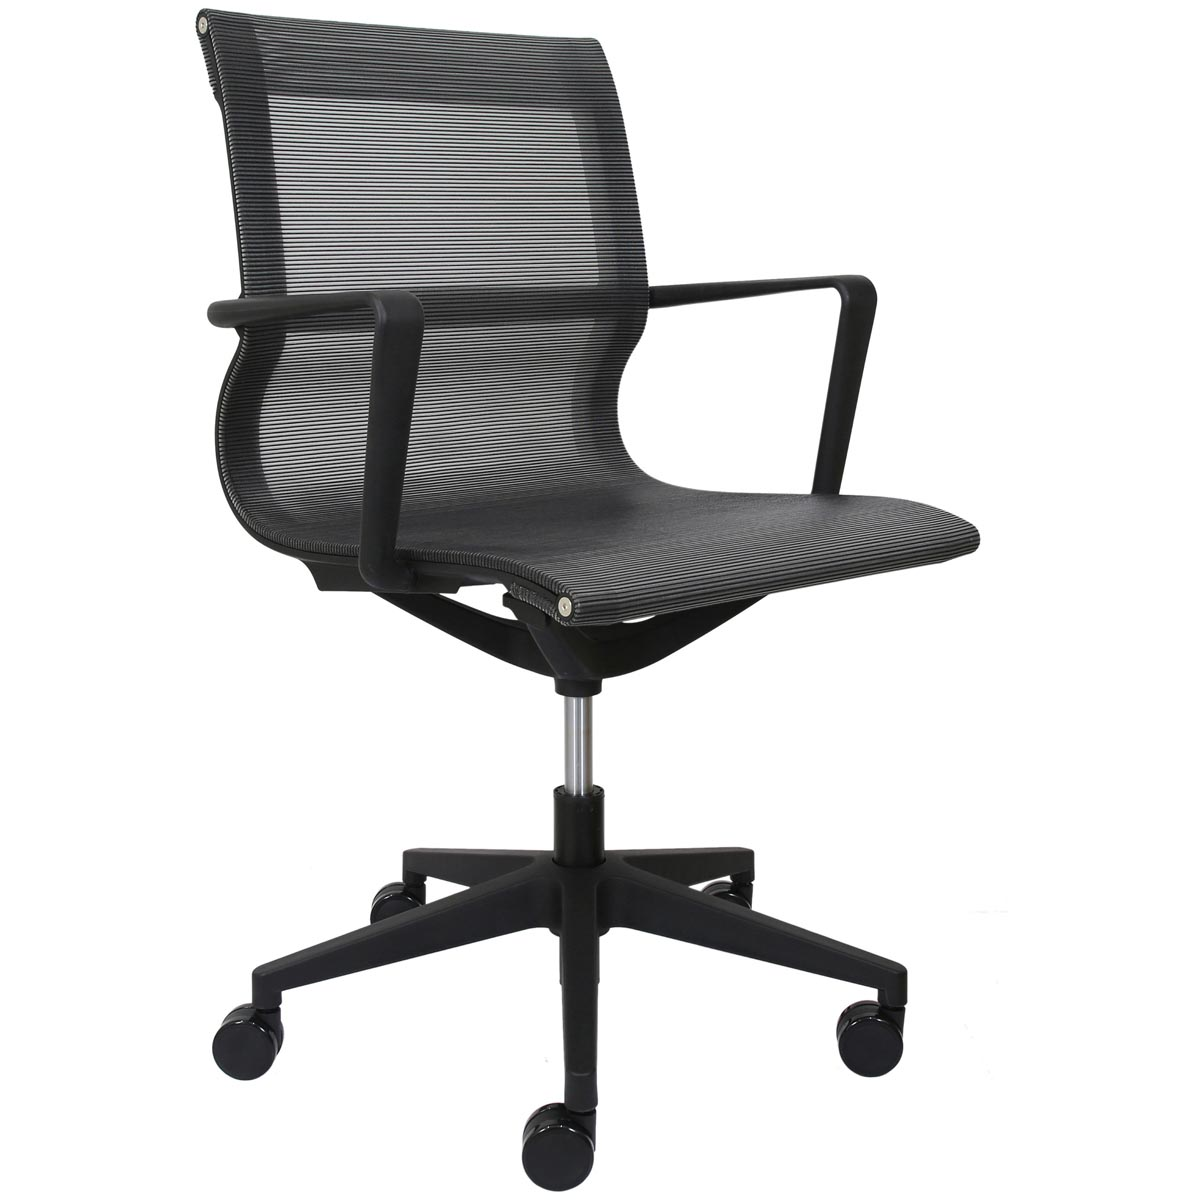 ofm posture task chair used party covers for sale office and chairs schoolsin